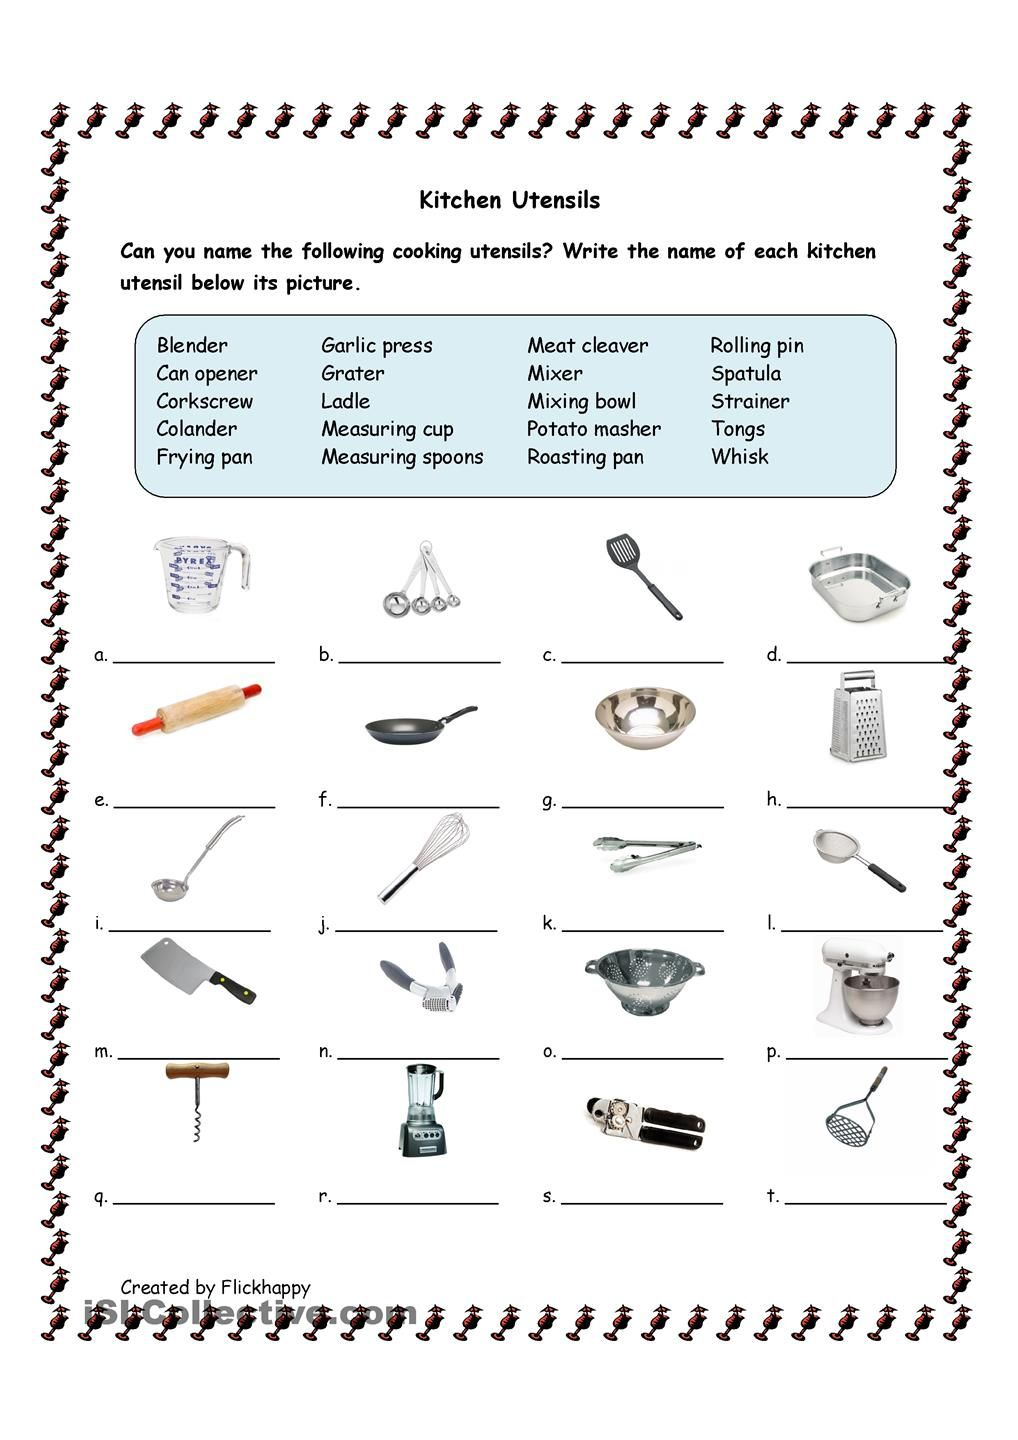 Worksheets Kitchen Safety Worksheets kitchen utensils facs pinterest utensils